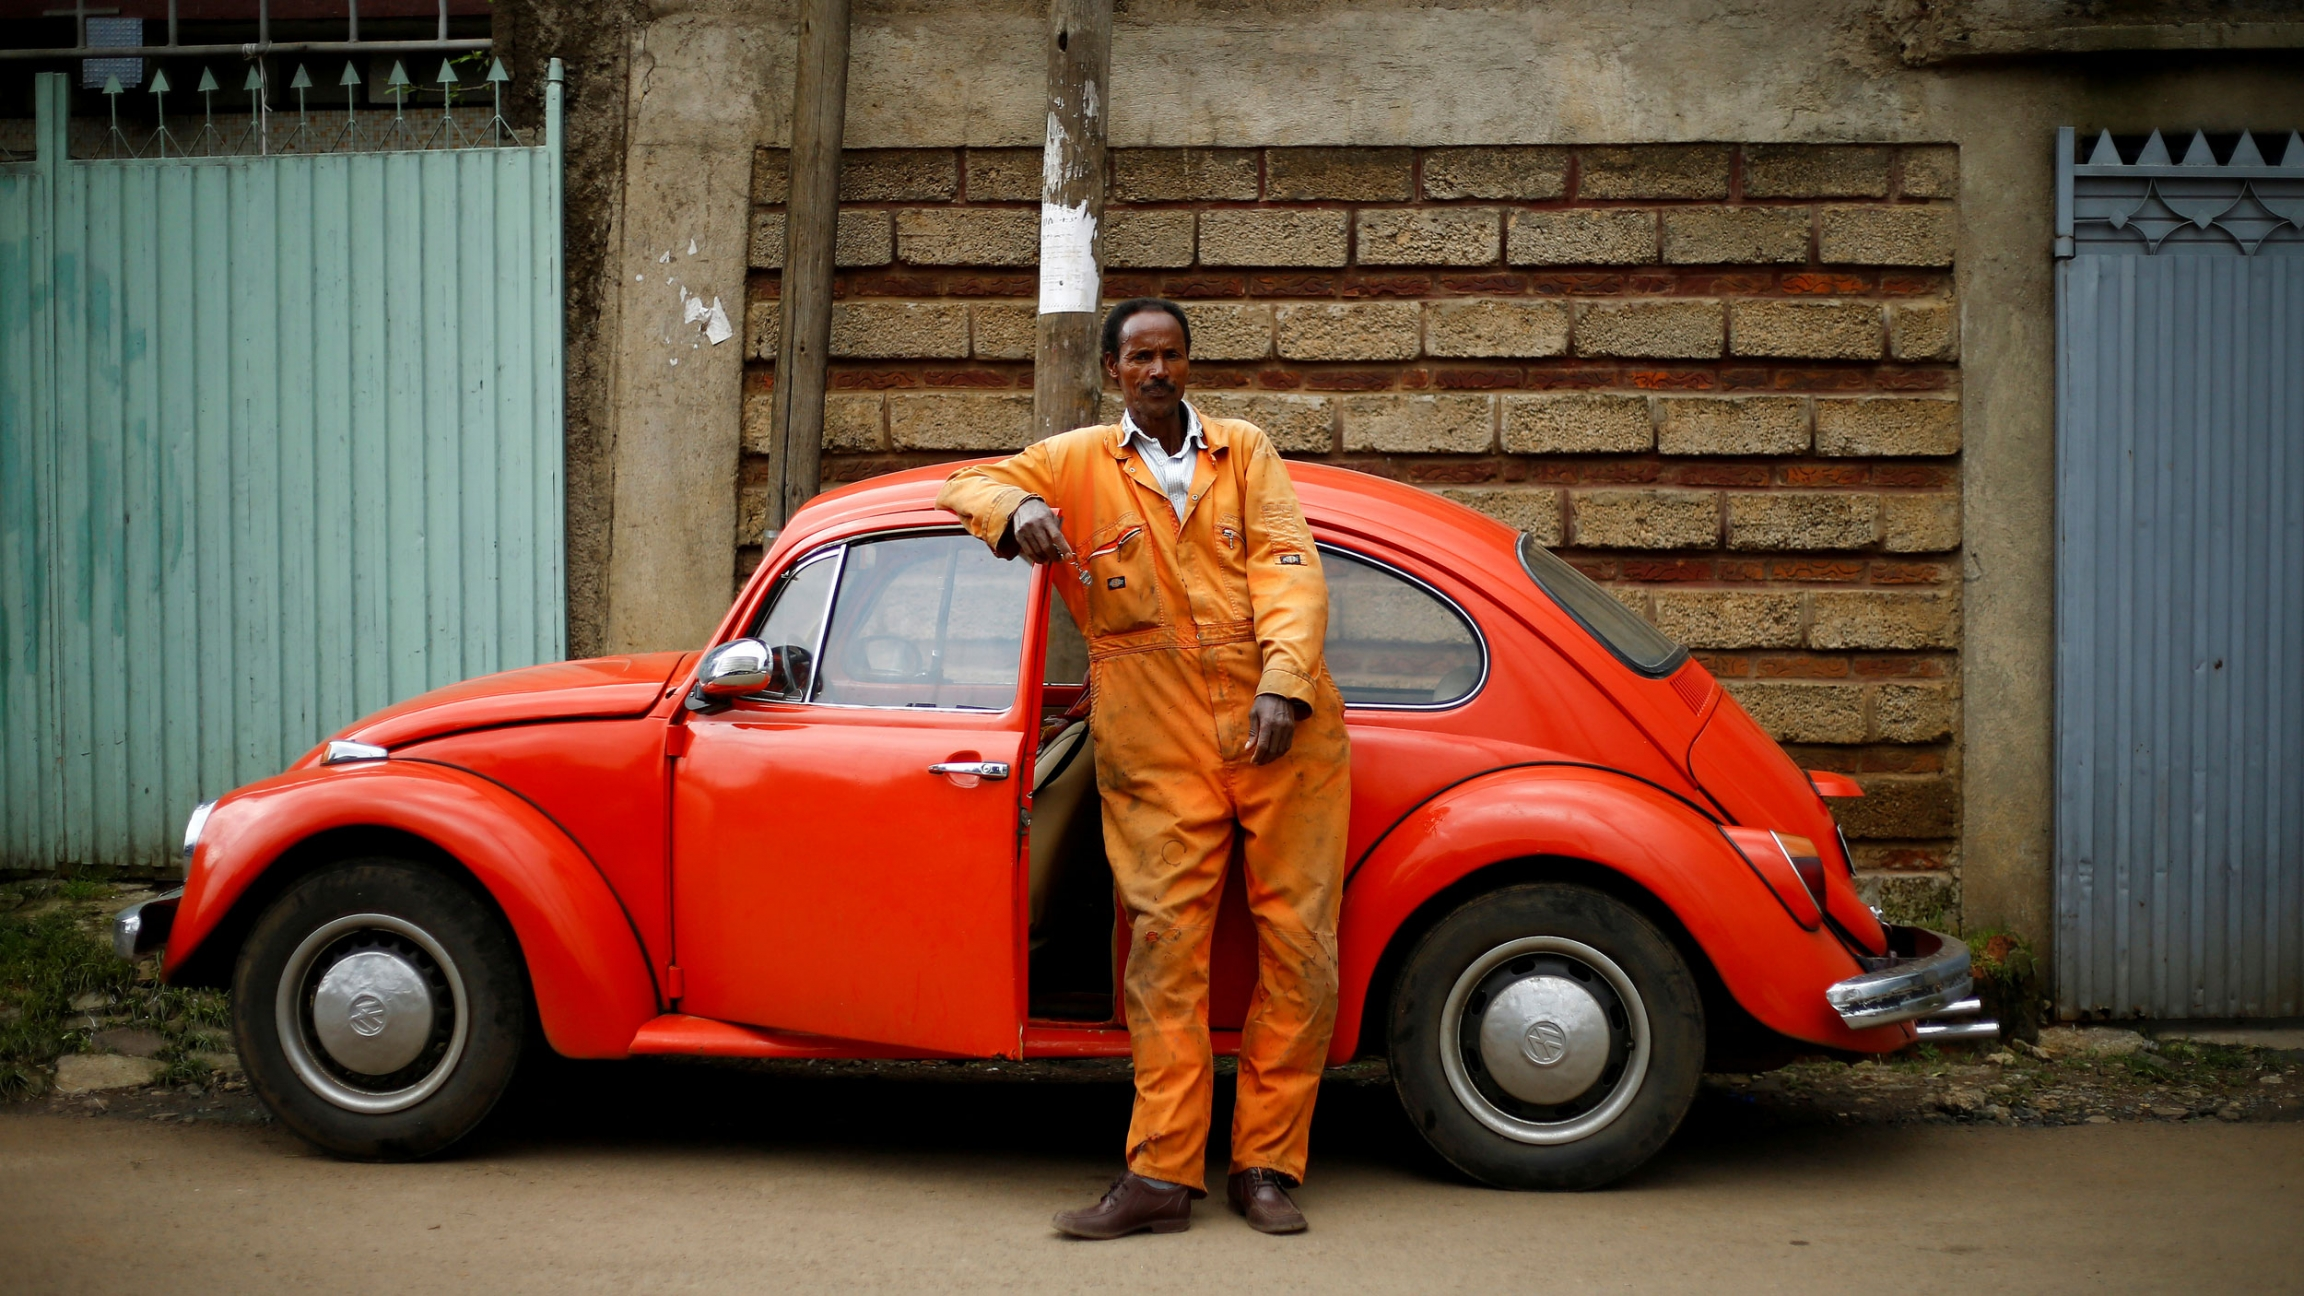 medium resolution of a man in an orange jump suit leans his arm on a red 1965 model volkswagen